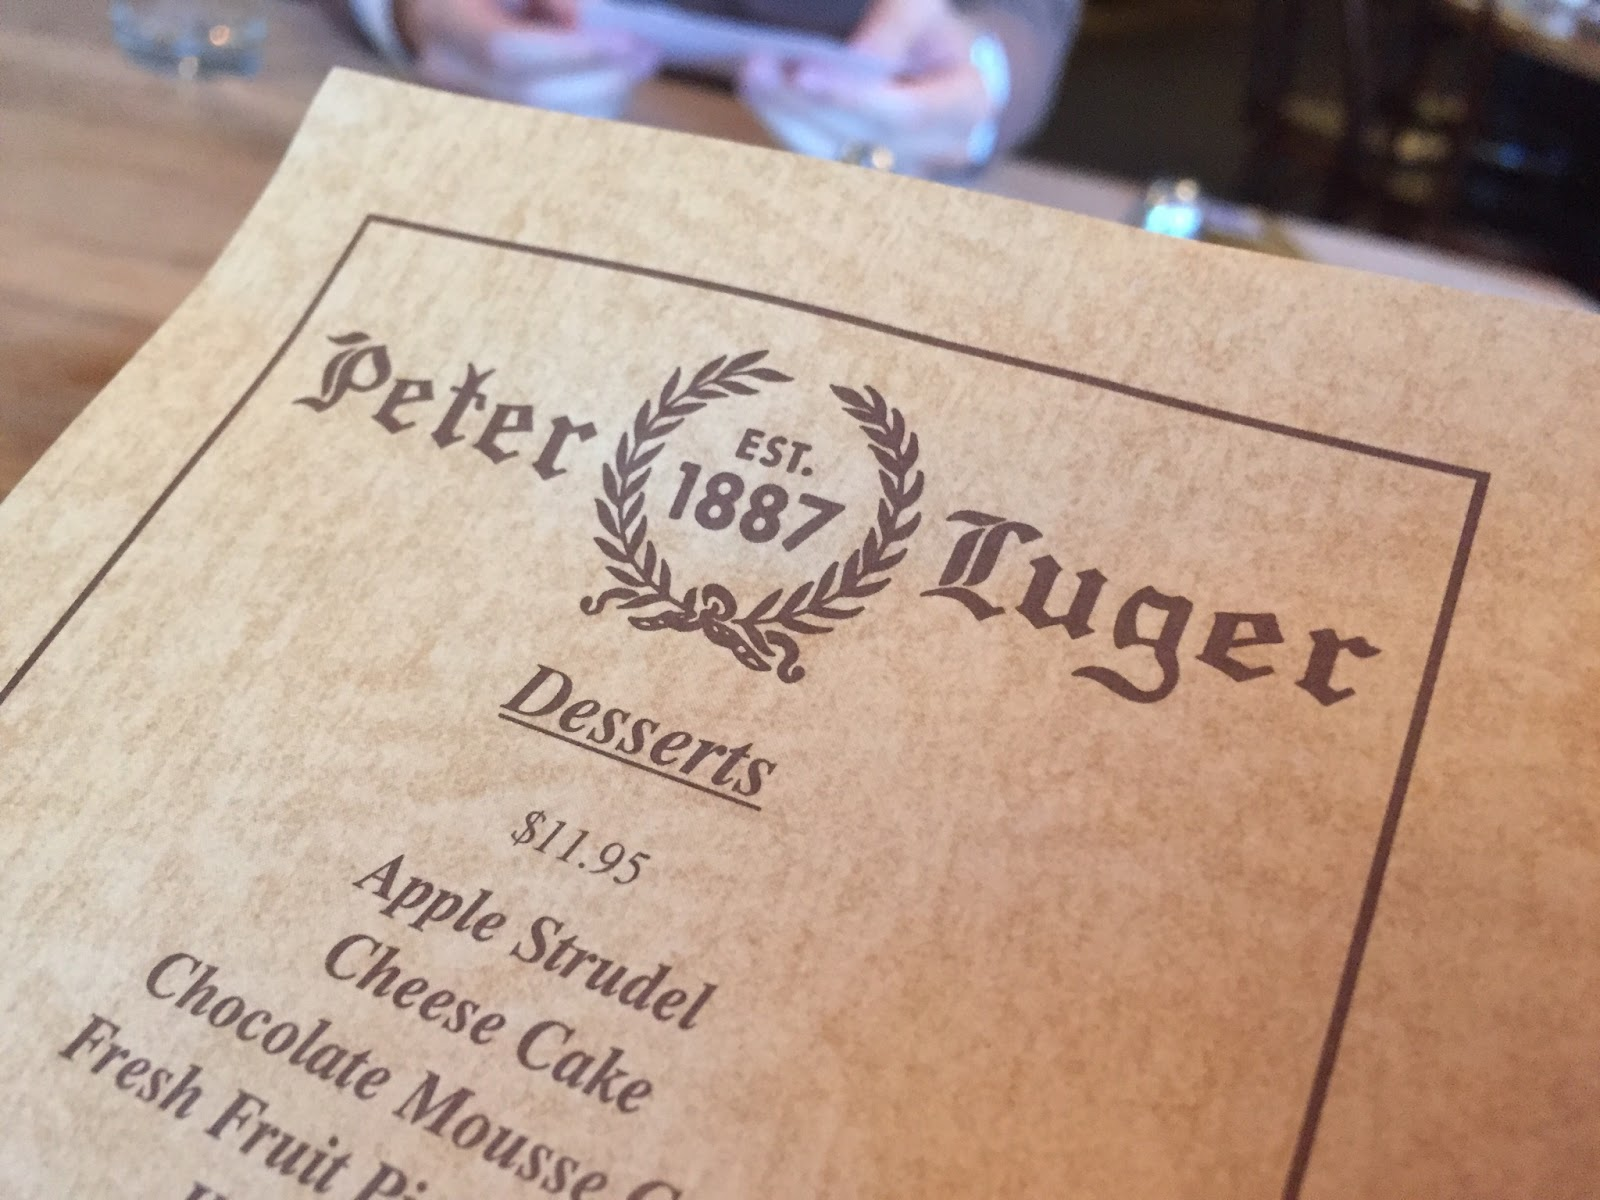 Peter Luger Steak House(ピータールーガー ステーキハウス) | ニューヨーク | アメリカ